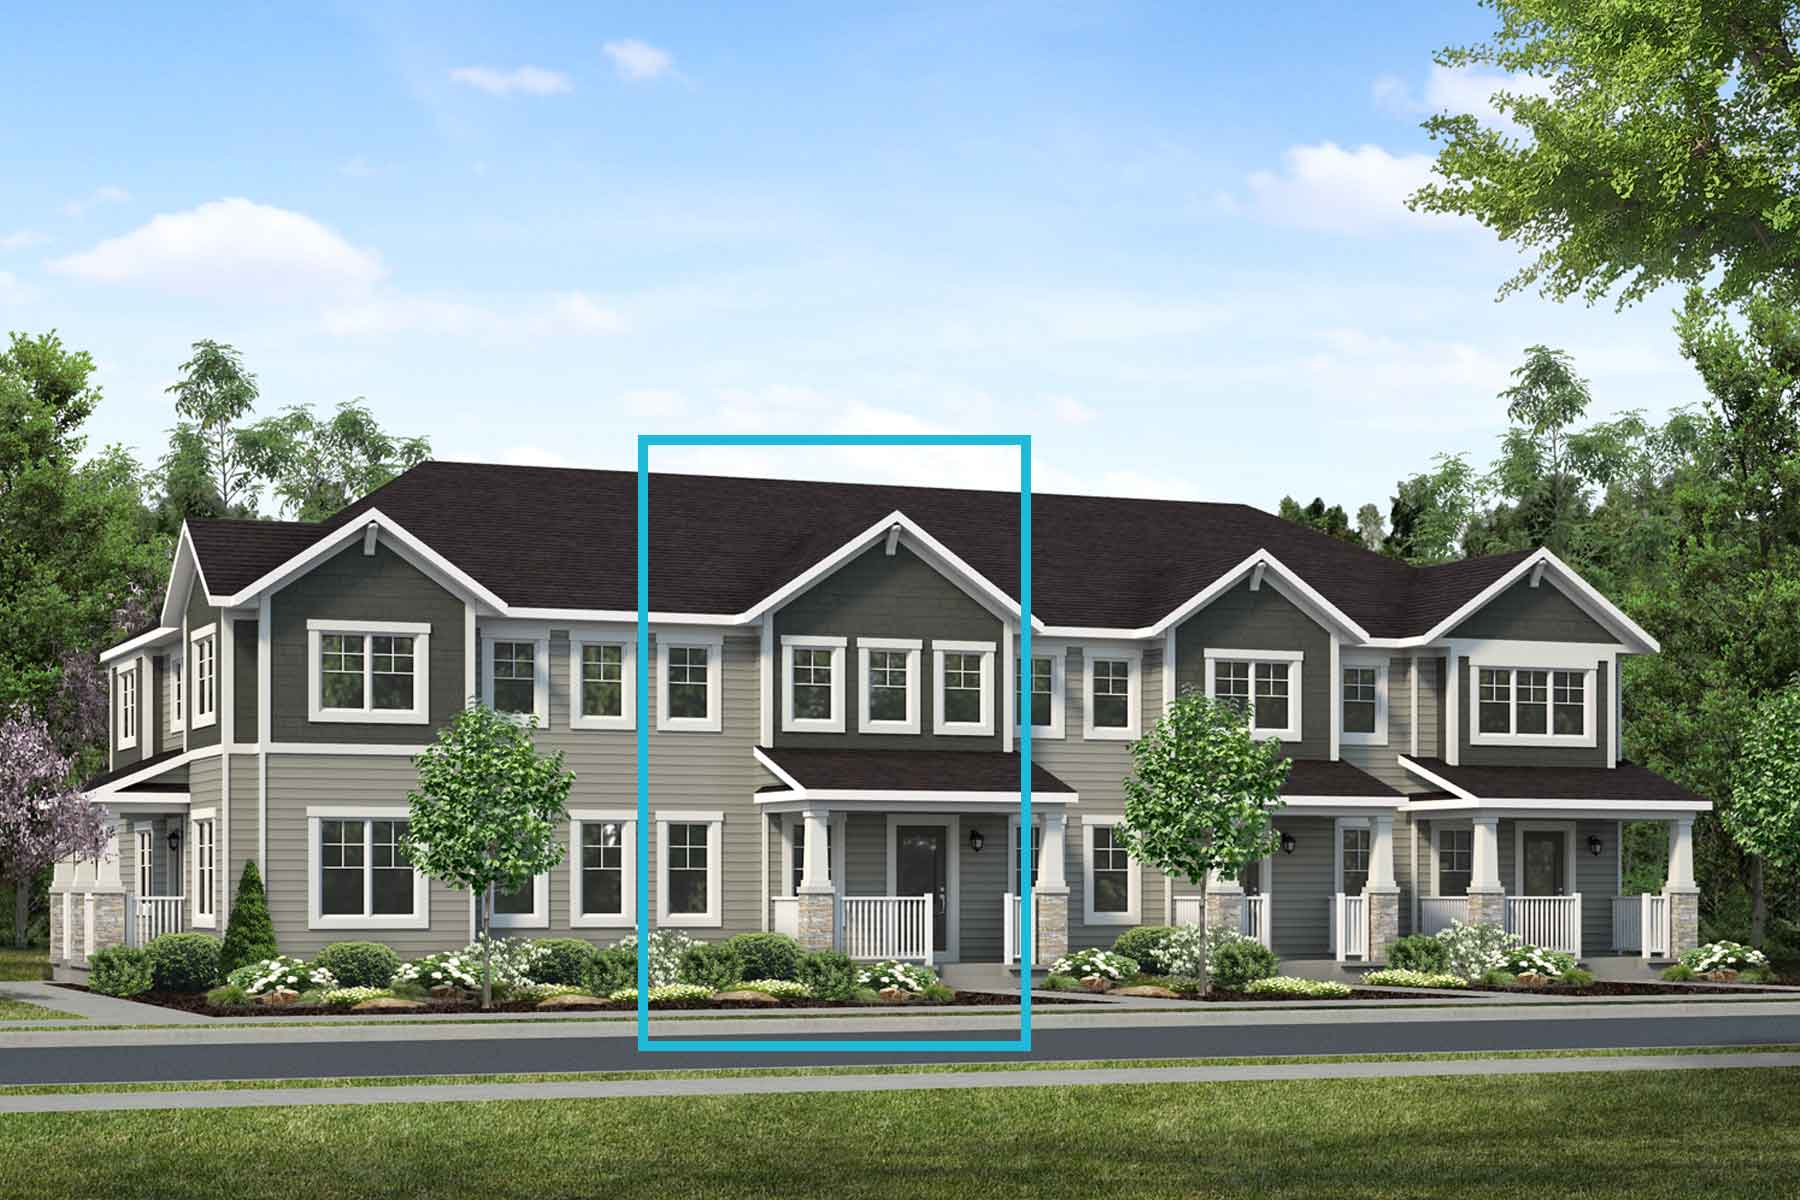 Kanata Plan TownHomes at Southwinds in Airdrie Alberta by Mattamy Homes